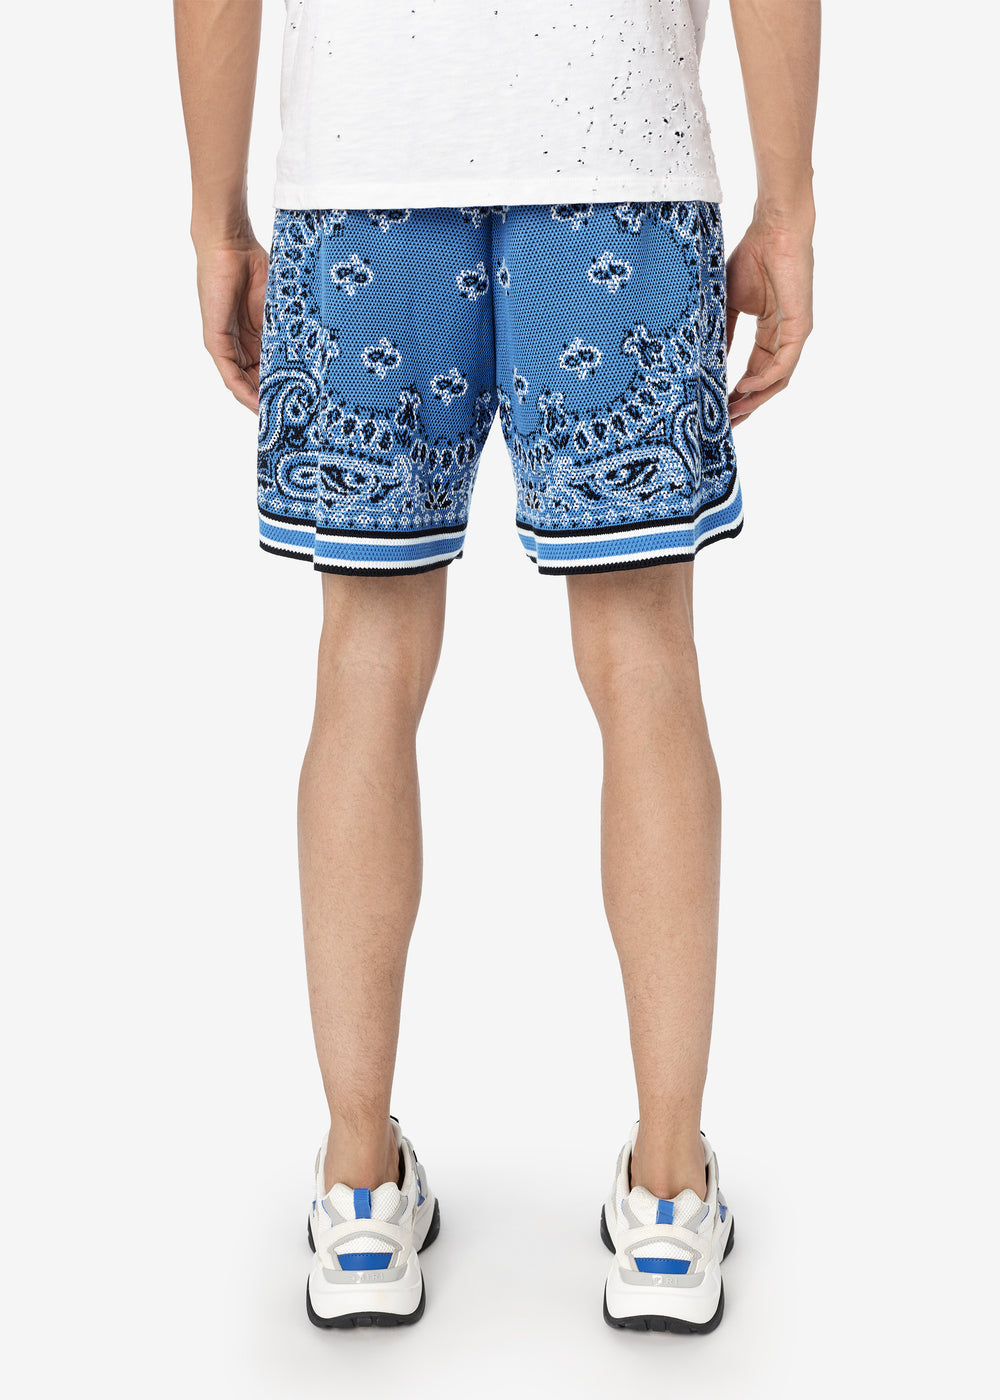 BANDANA B-BALL SHORTS - CAROLINA BLUE